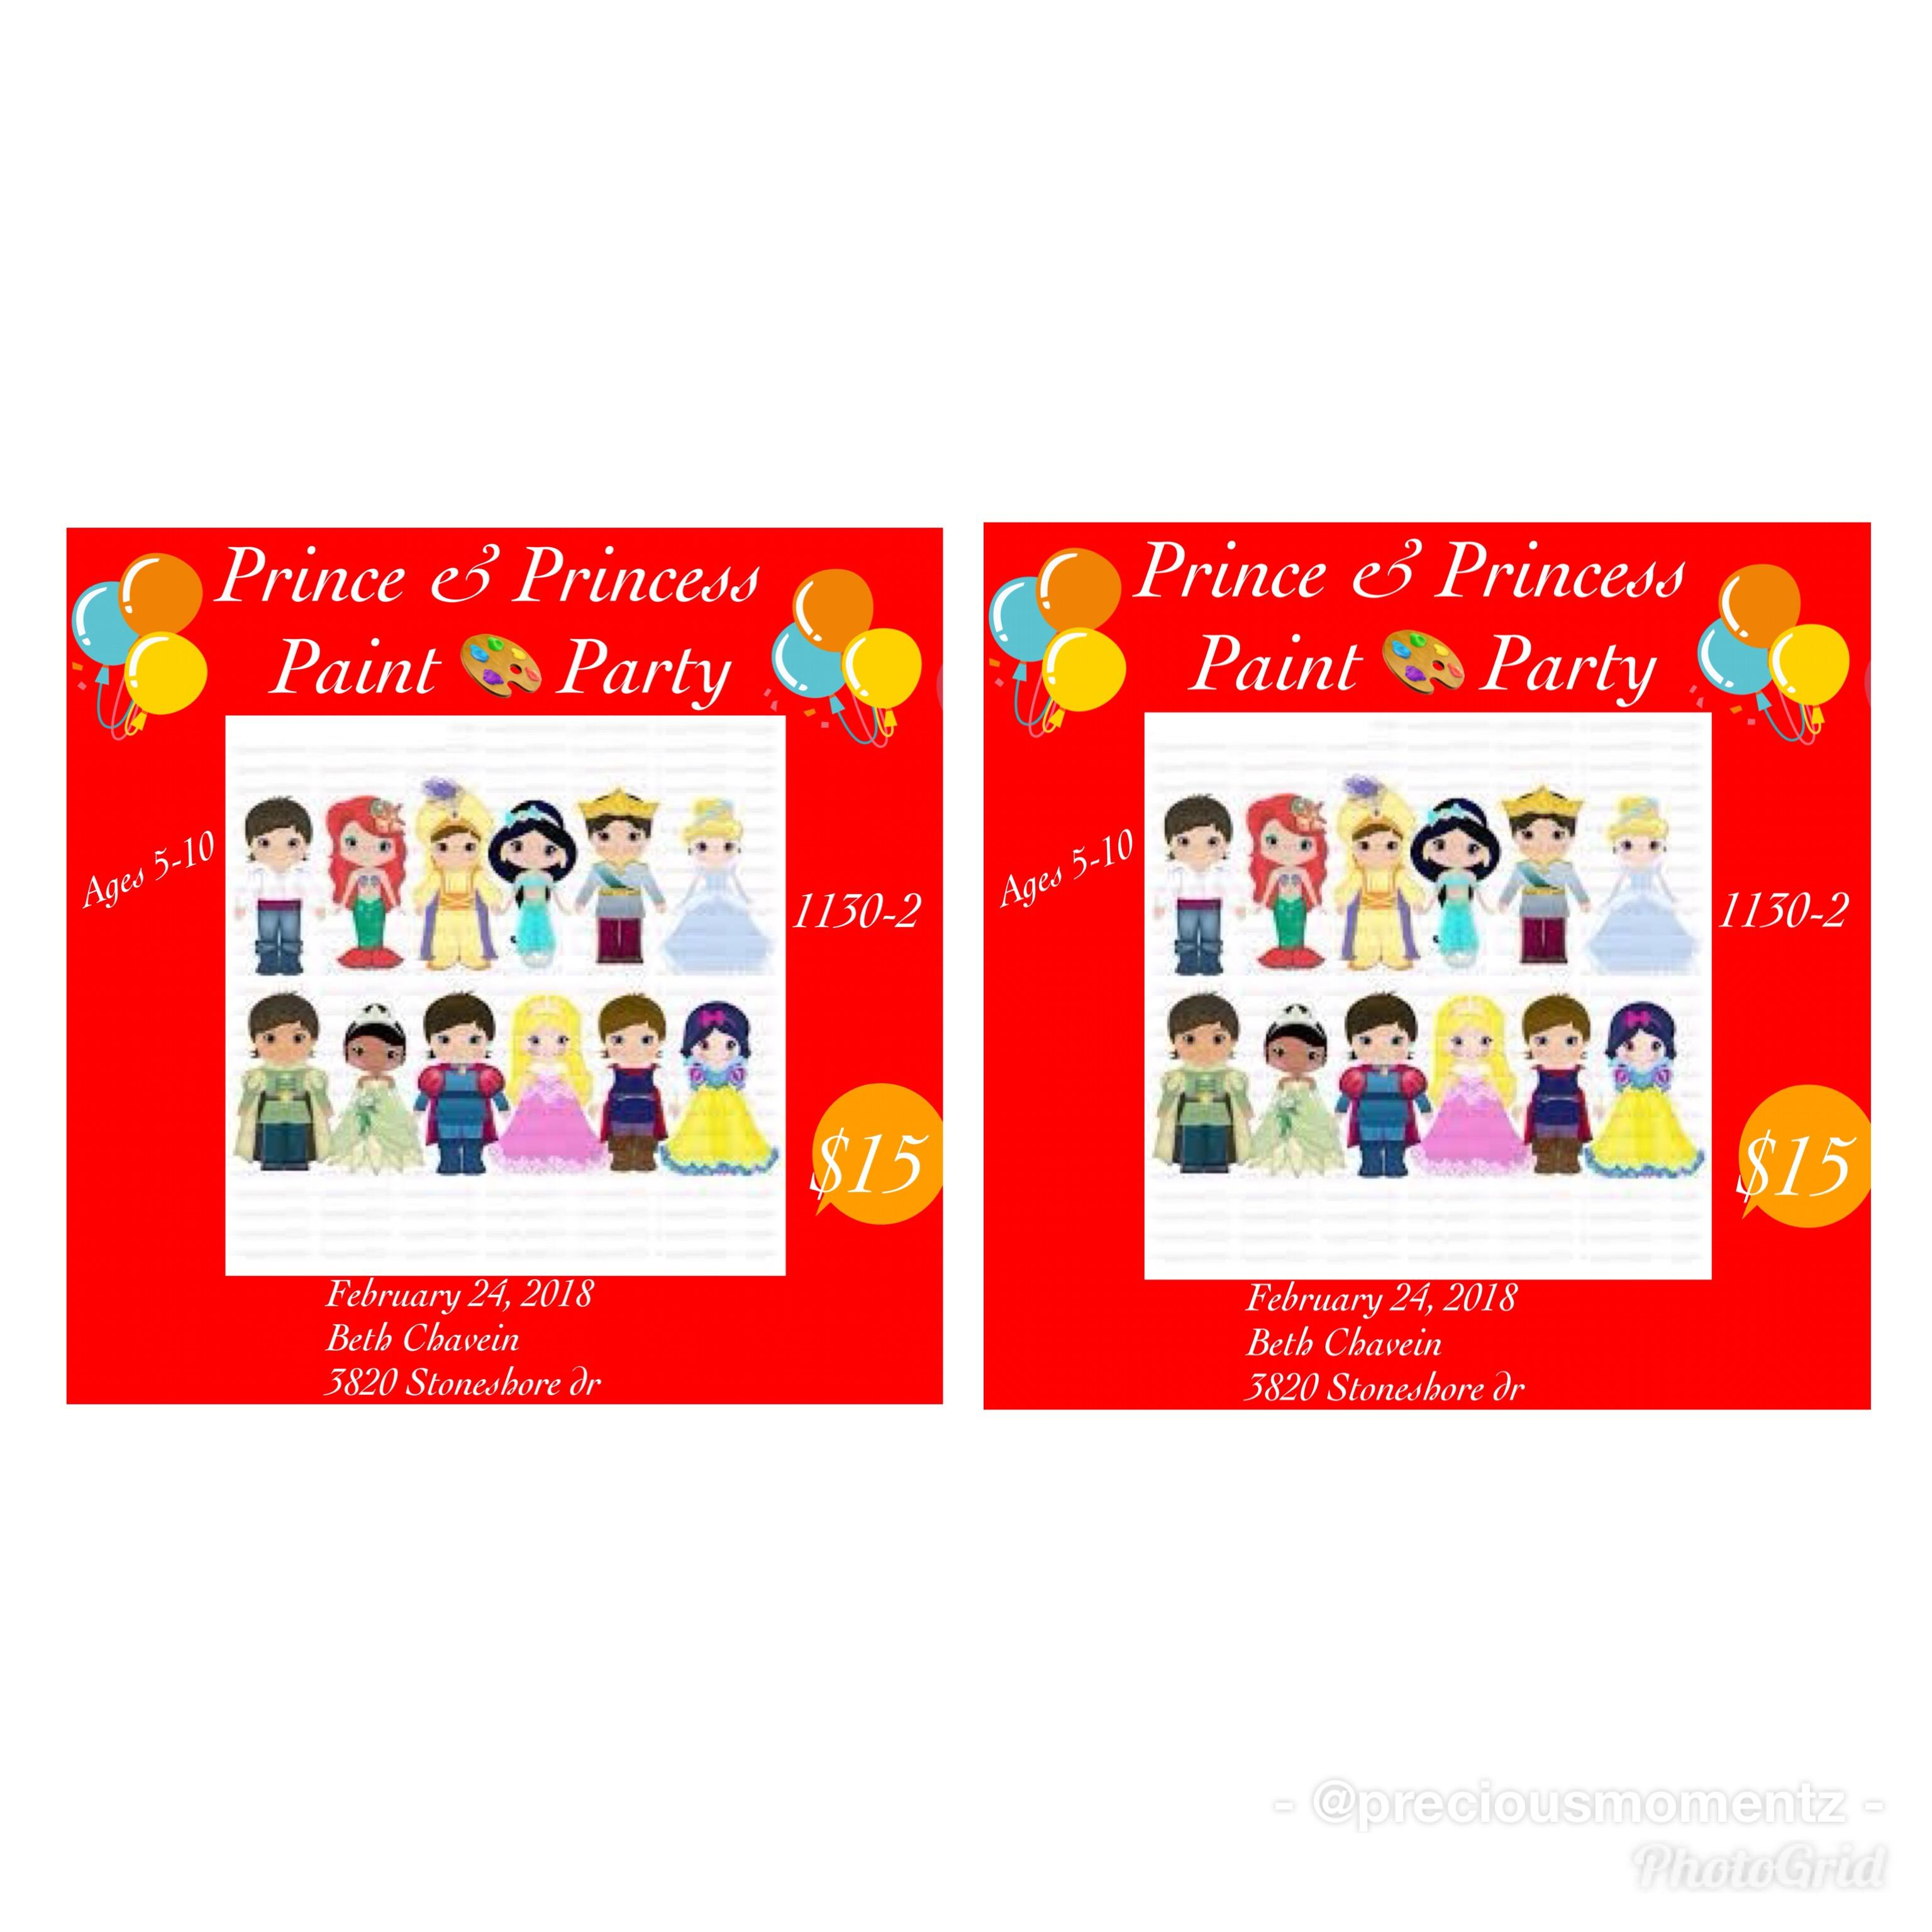 prince and princess paint party ages 5 10 24 feb 2018